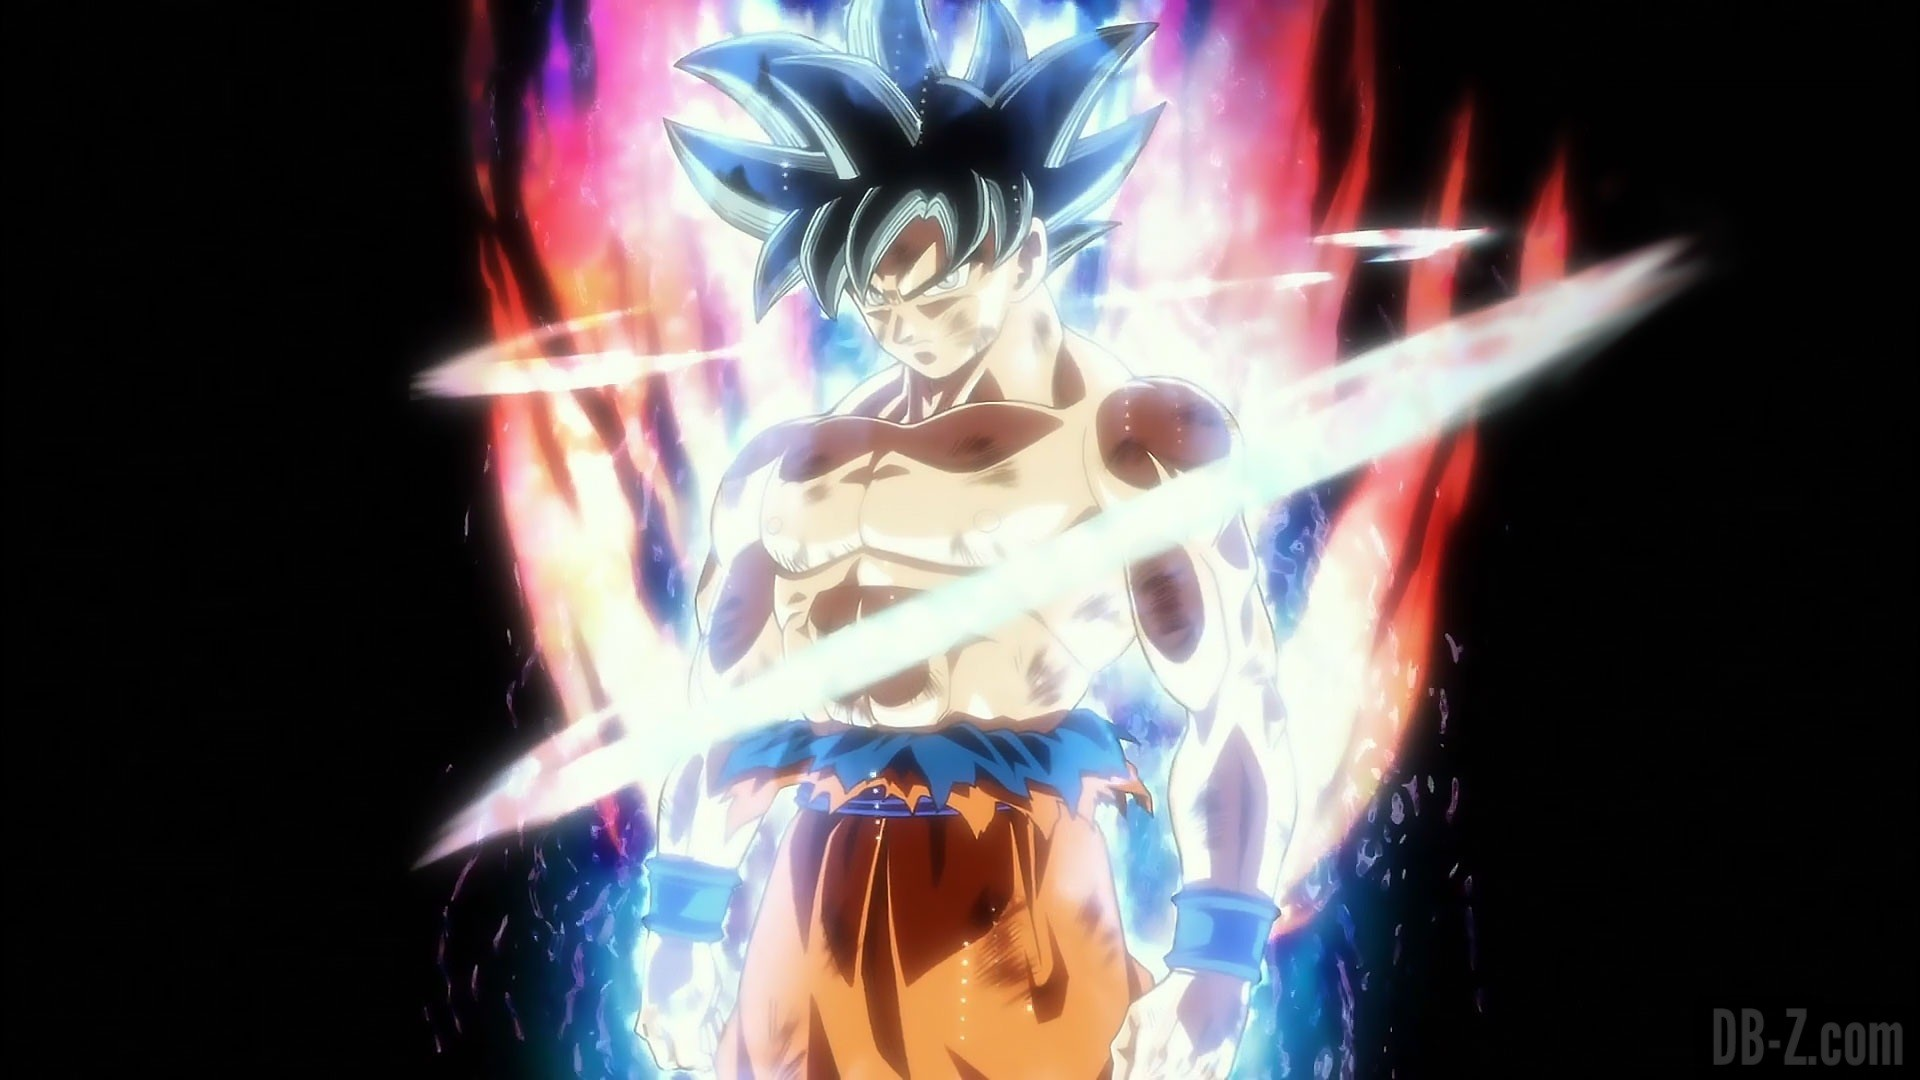 Dragon ball goku wallpaper 70 images - Dragon ball super background music mp3 download ...